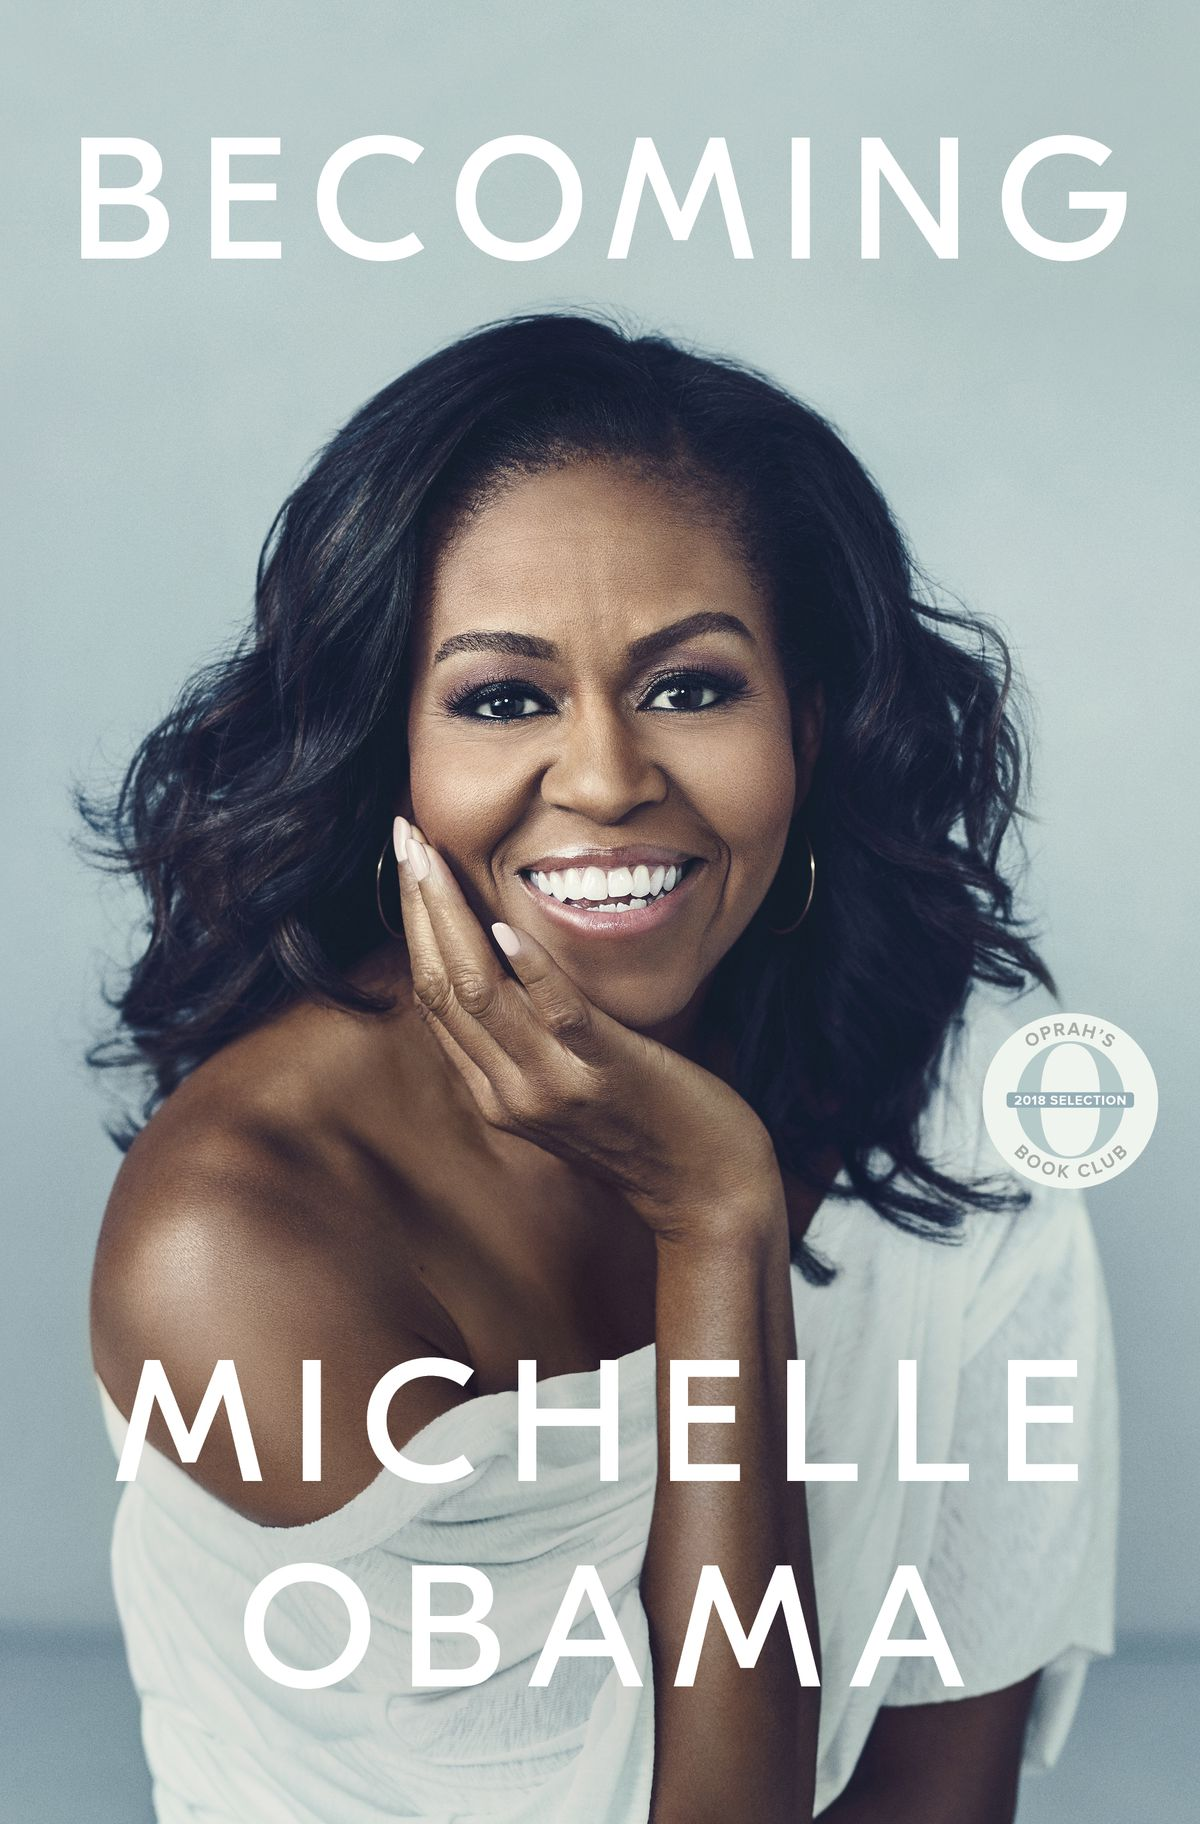 The cover is a portrait of Obama, smiling and wearing a white off-the-shoulder top against a pale blue background.